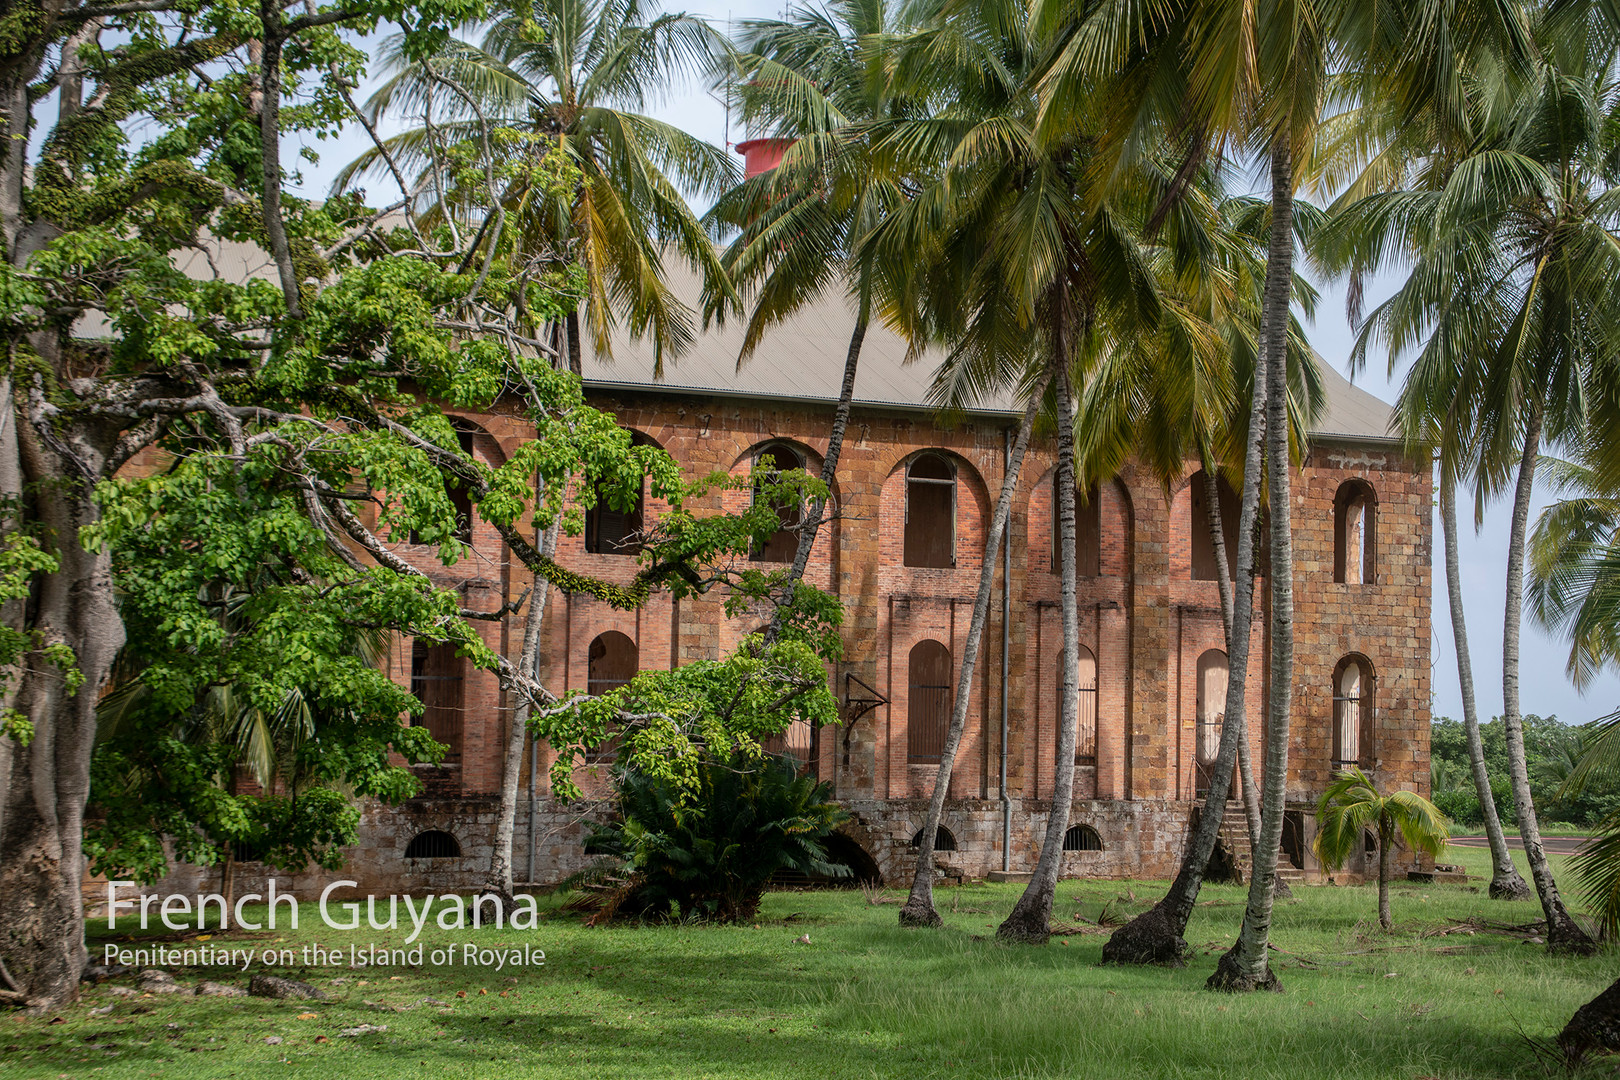 2019-05-17 French Guyana POW (46) 452A69